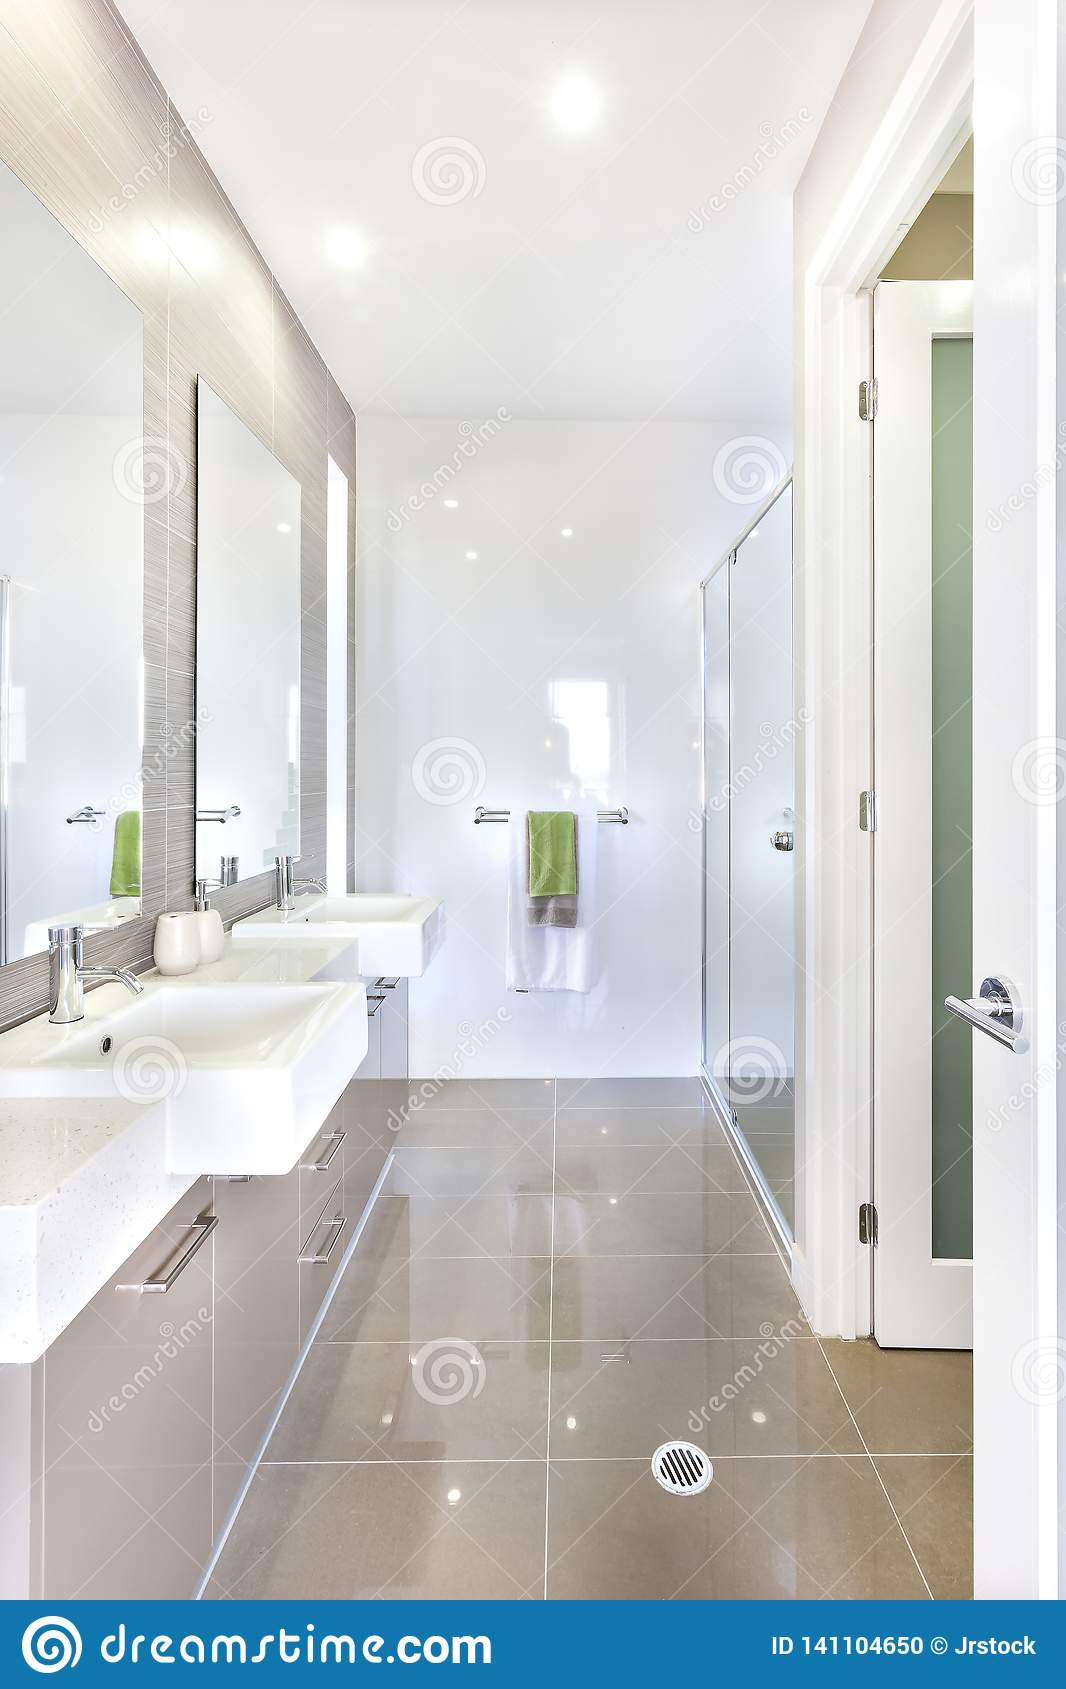 Modern bathroom with set of washstands and bathroom